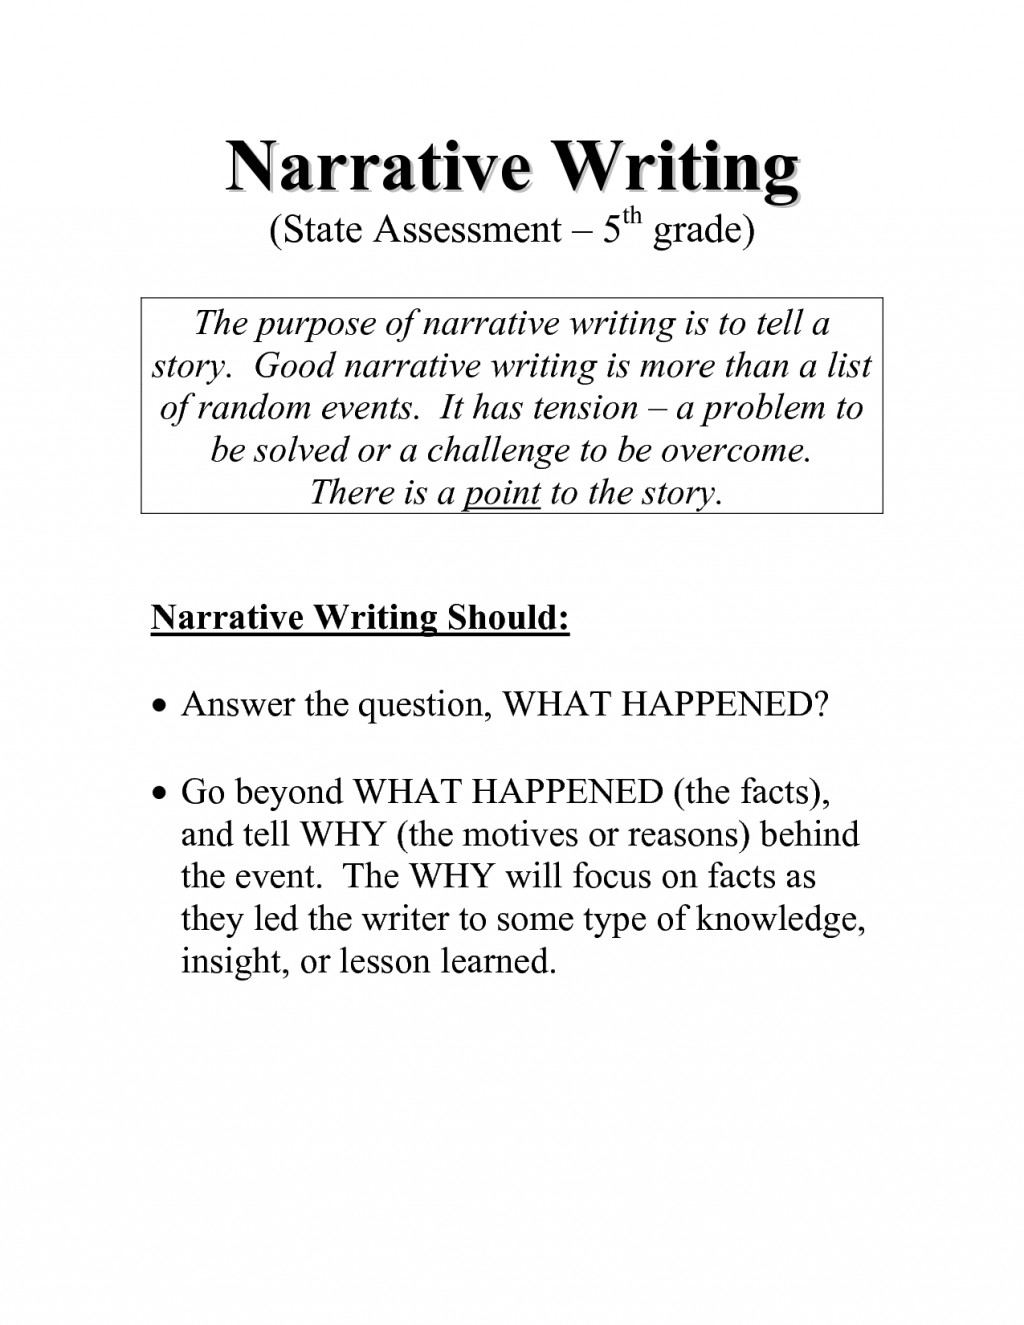 002 Writing Narrative Essay Outline Sample Actor Resume Beginner Prompts For Essays Best College Persuasive Opinion 4th Grade Large